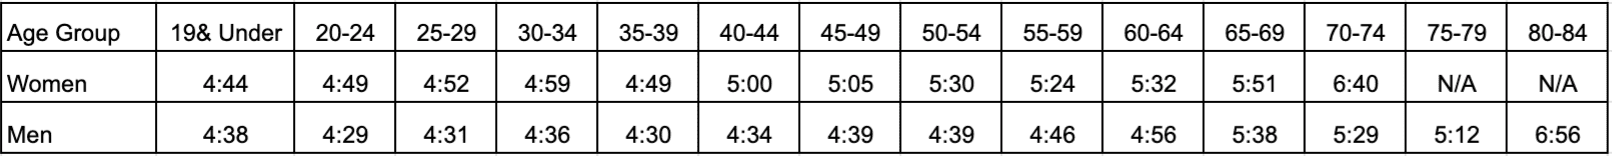 Average Finisher Times based on age group for the austin marathon